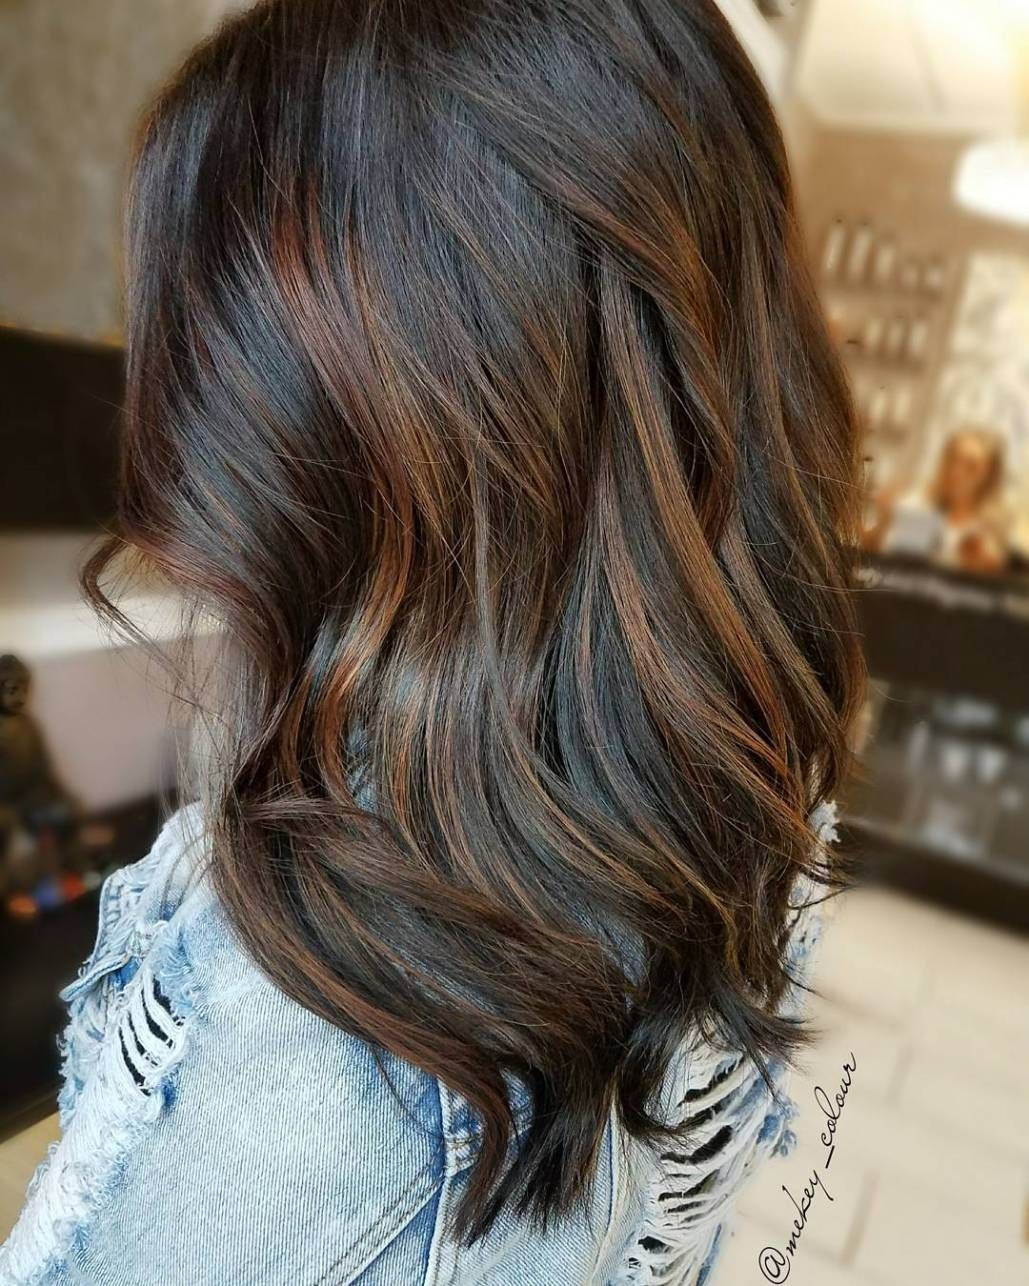 60 Chocolate Brown Hair Color Ideas For Brunettes Brown Hair With Highlights Brown Hair Colors Brunette Hair Color